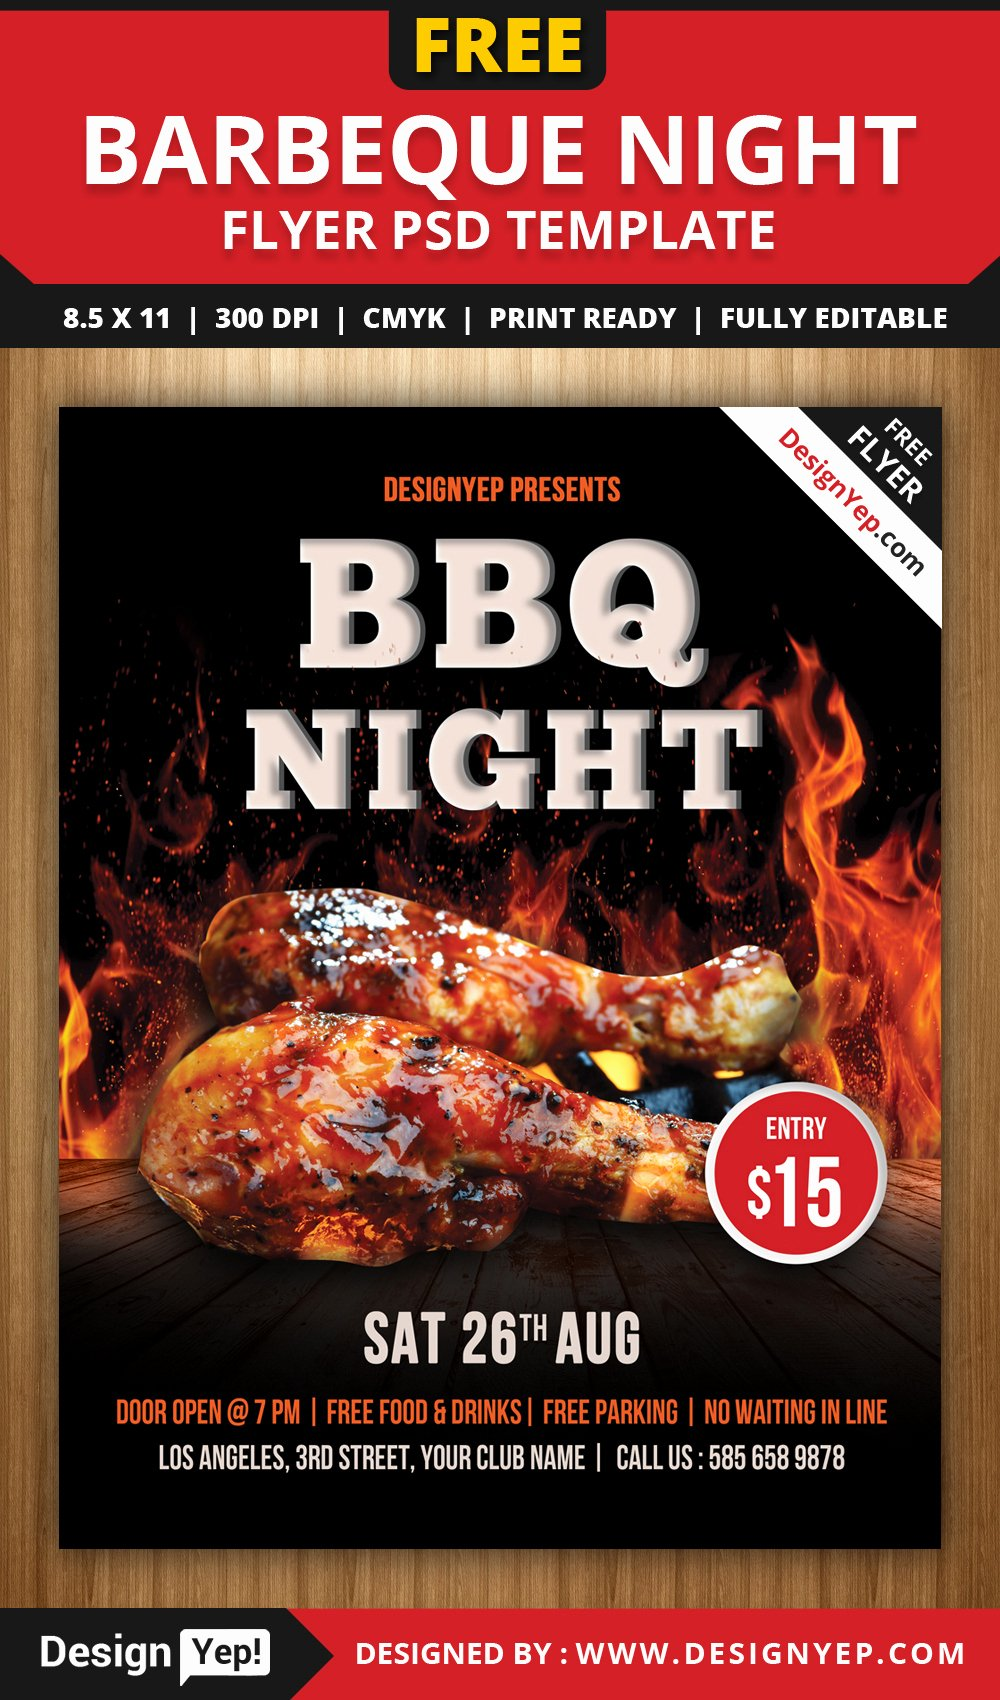 Free Bbq Flyer Template Beautiful Free Barbeque Night Flyer Psd Template Designyep